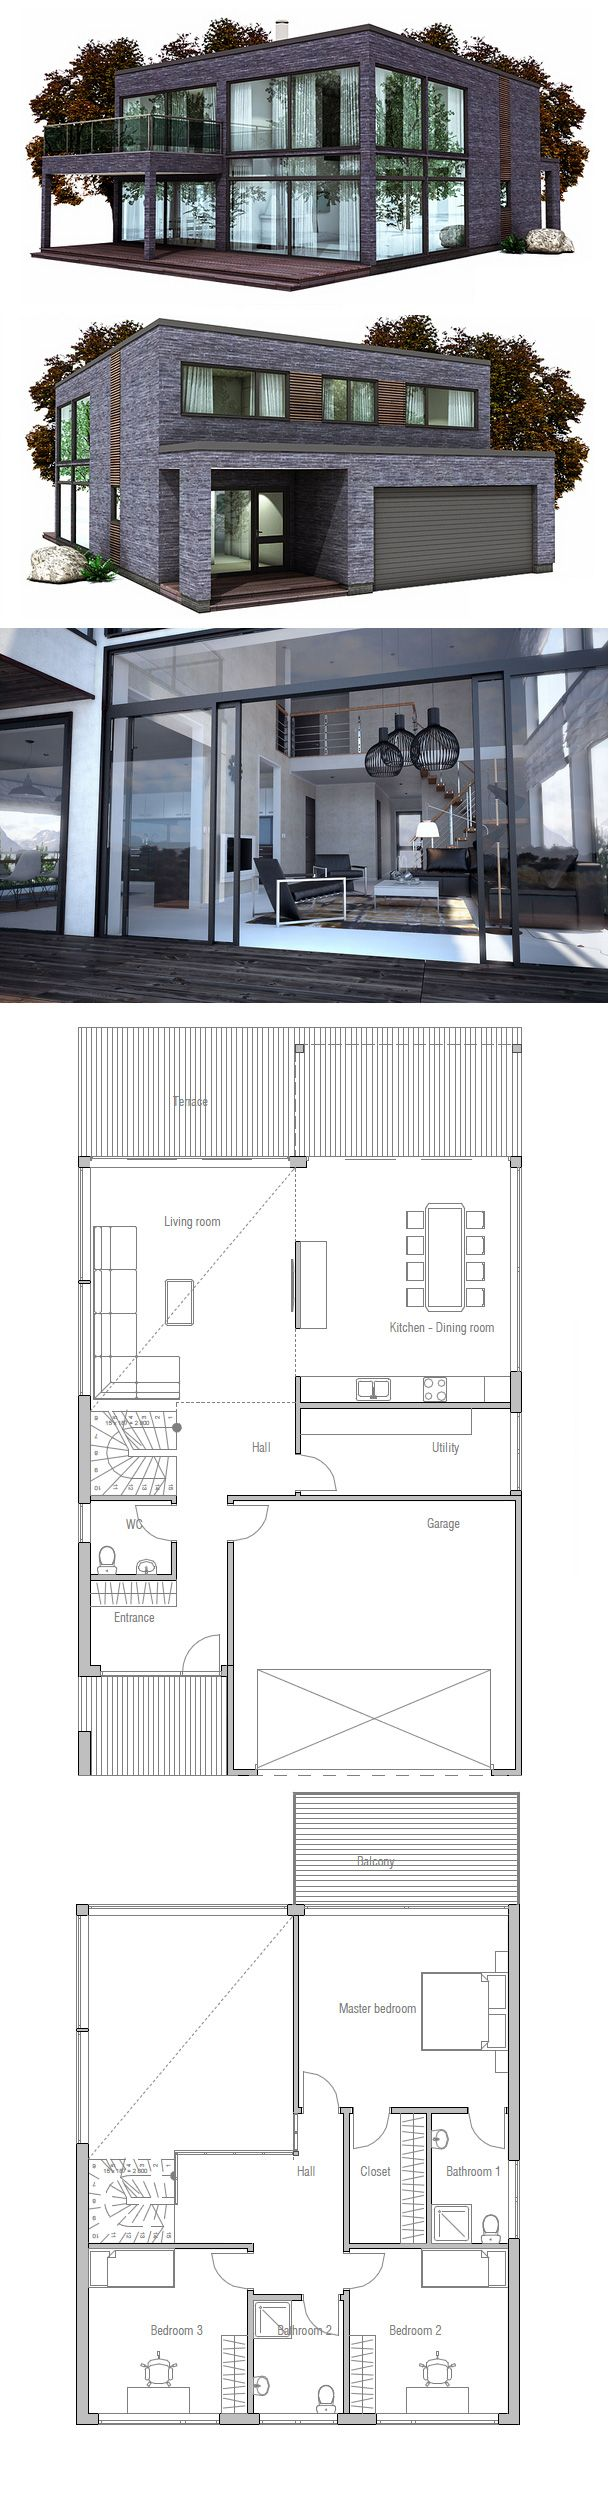 container house house plan modern minimalist architecture who else wants simple step by step plans to design and build a container home from scratch - Simple Modern House Floor Plans